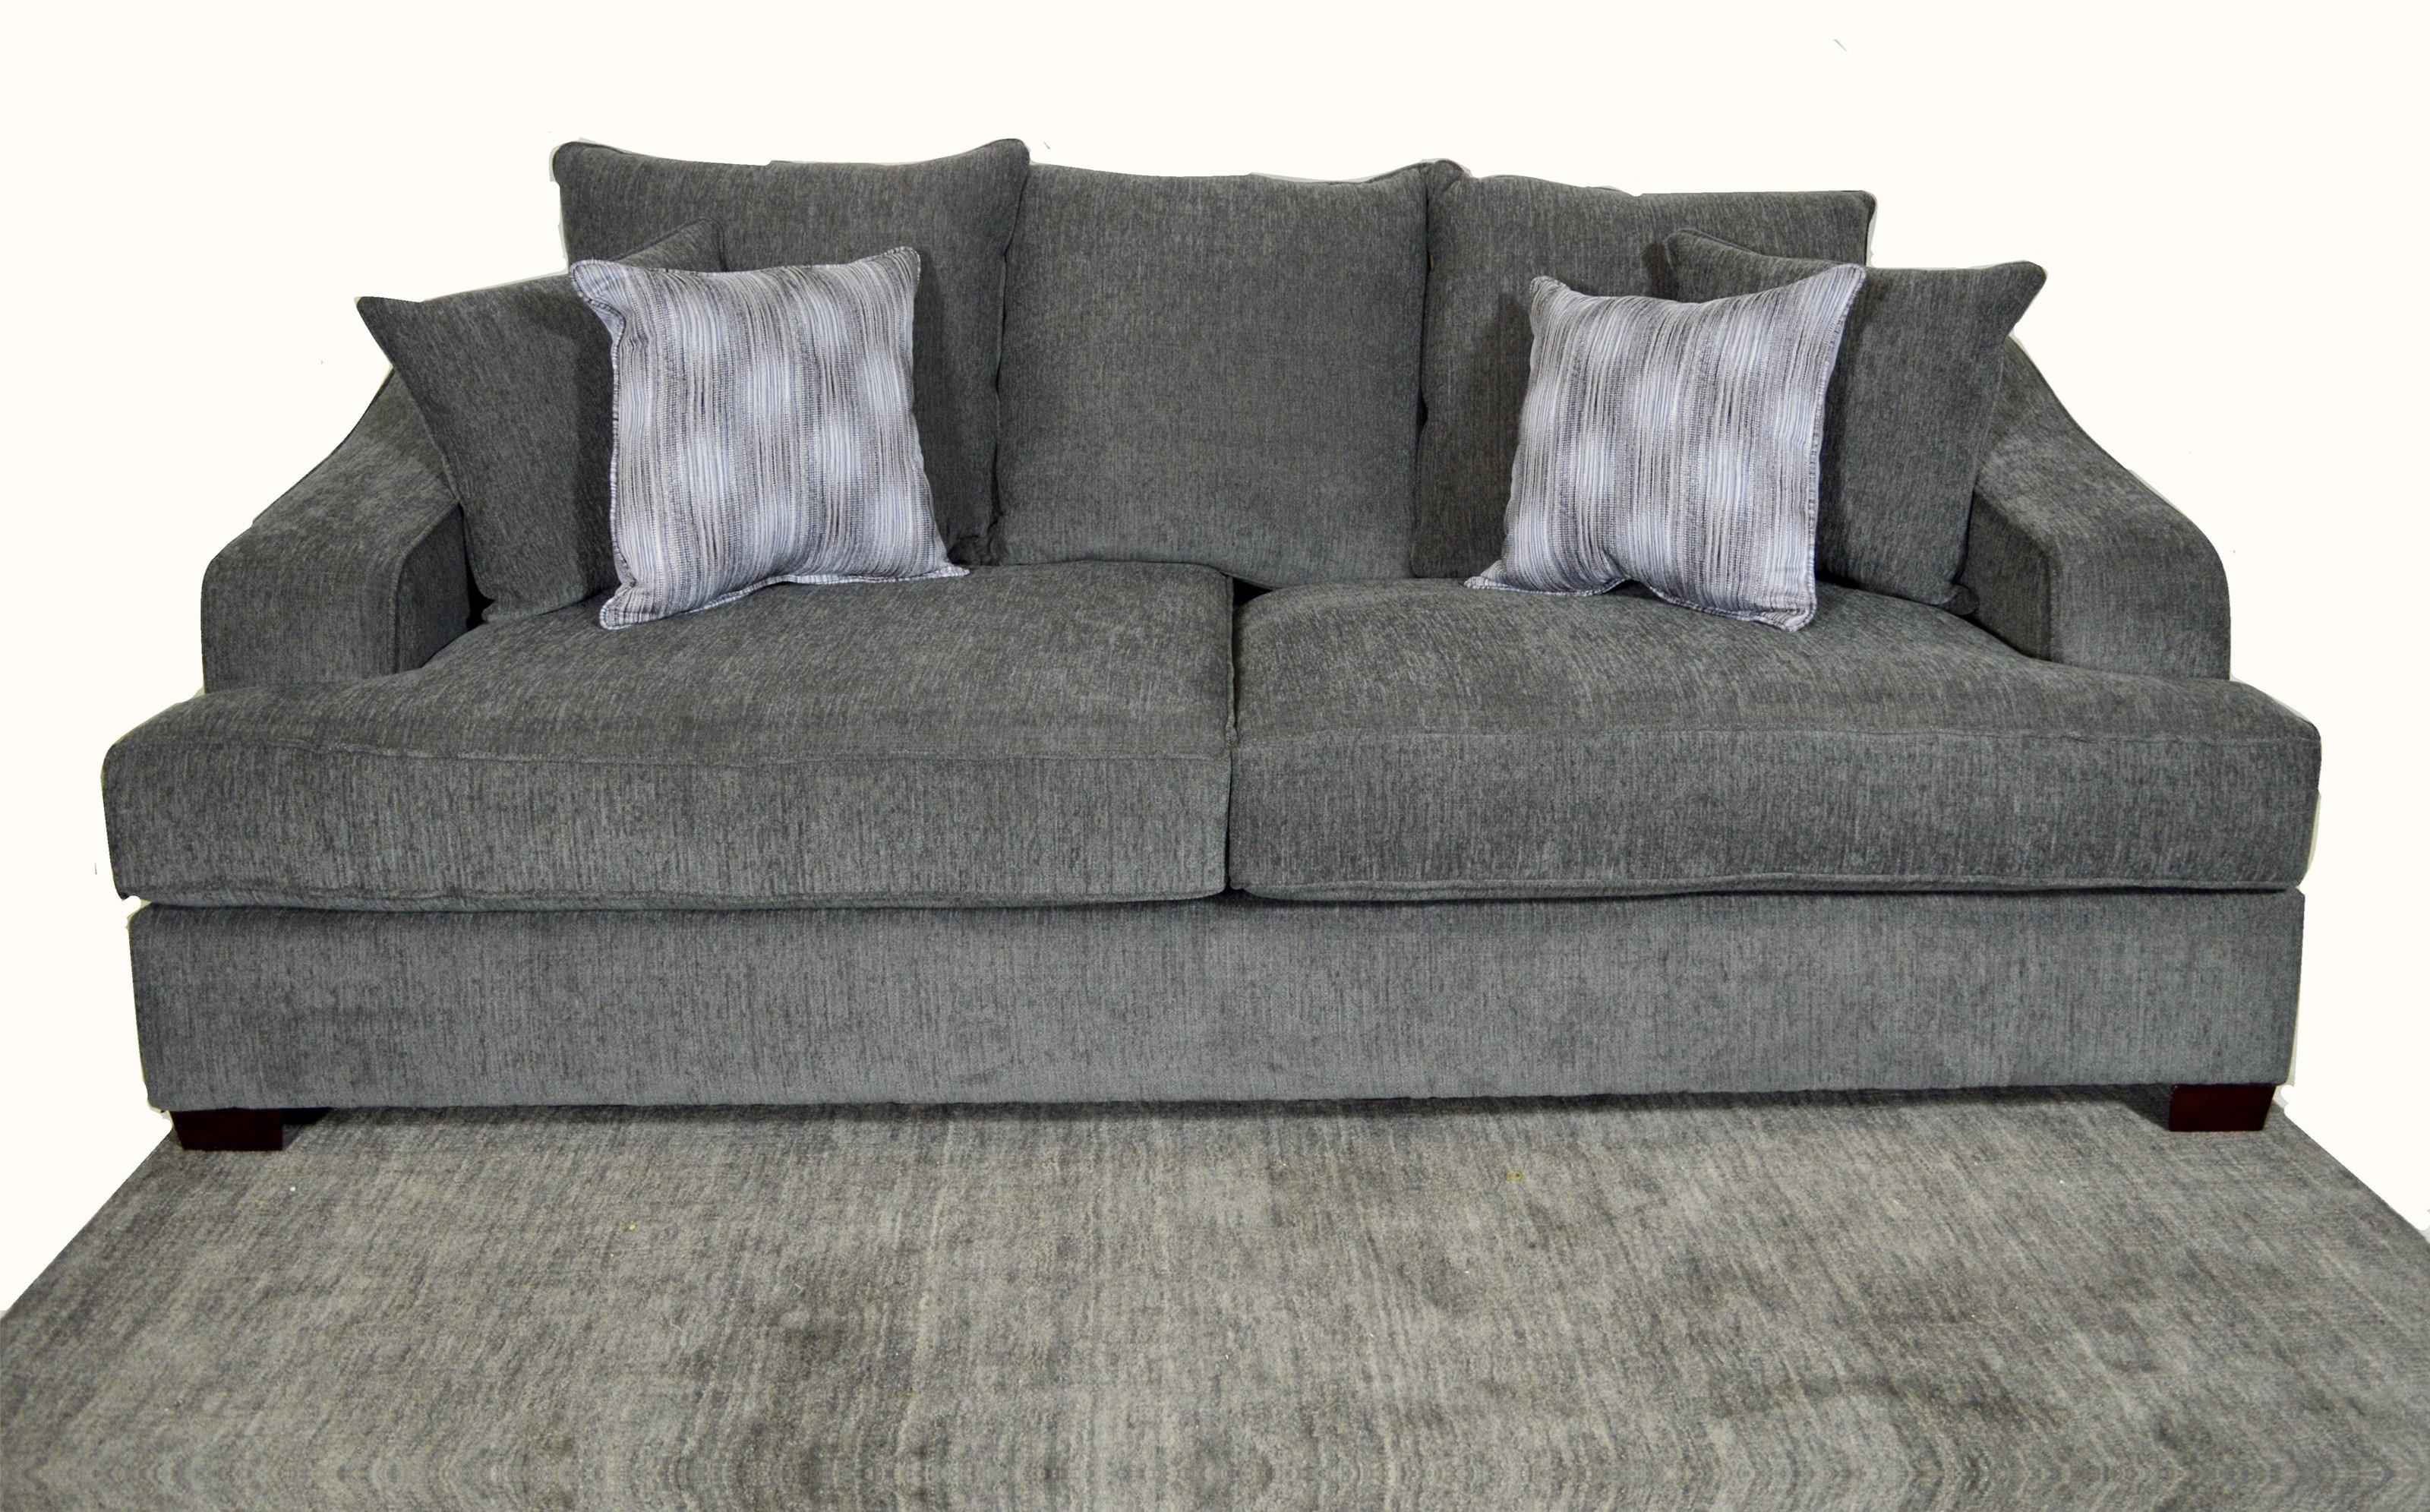 Lincoln Sofa, Loveseat and Chair Set by EJ Lauren at Sam Levitz Outlet